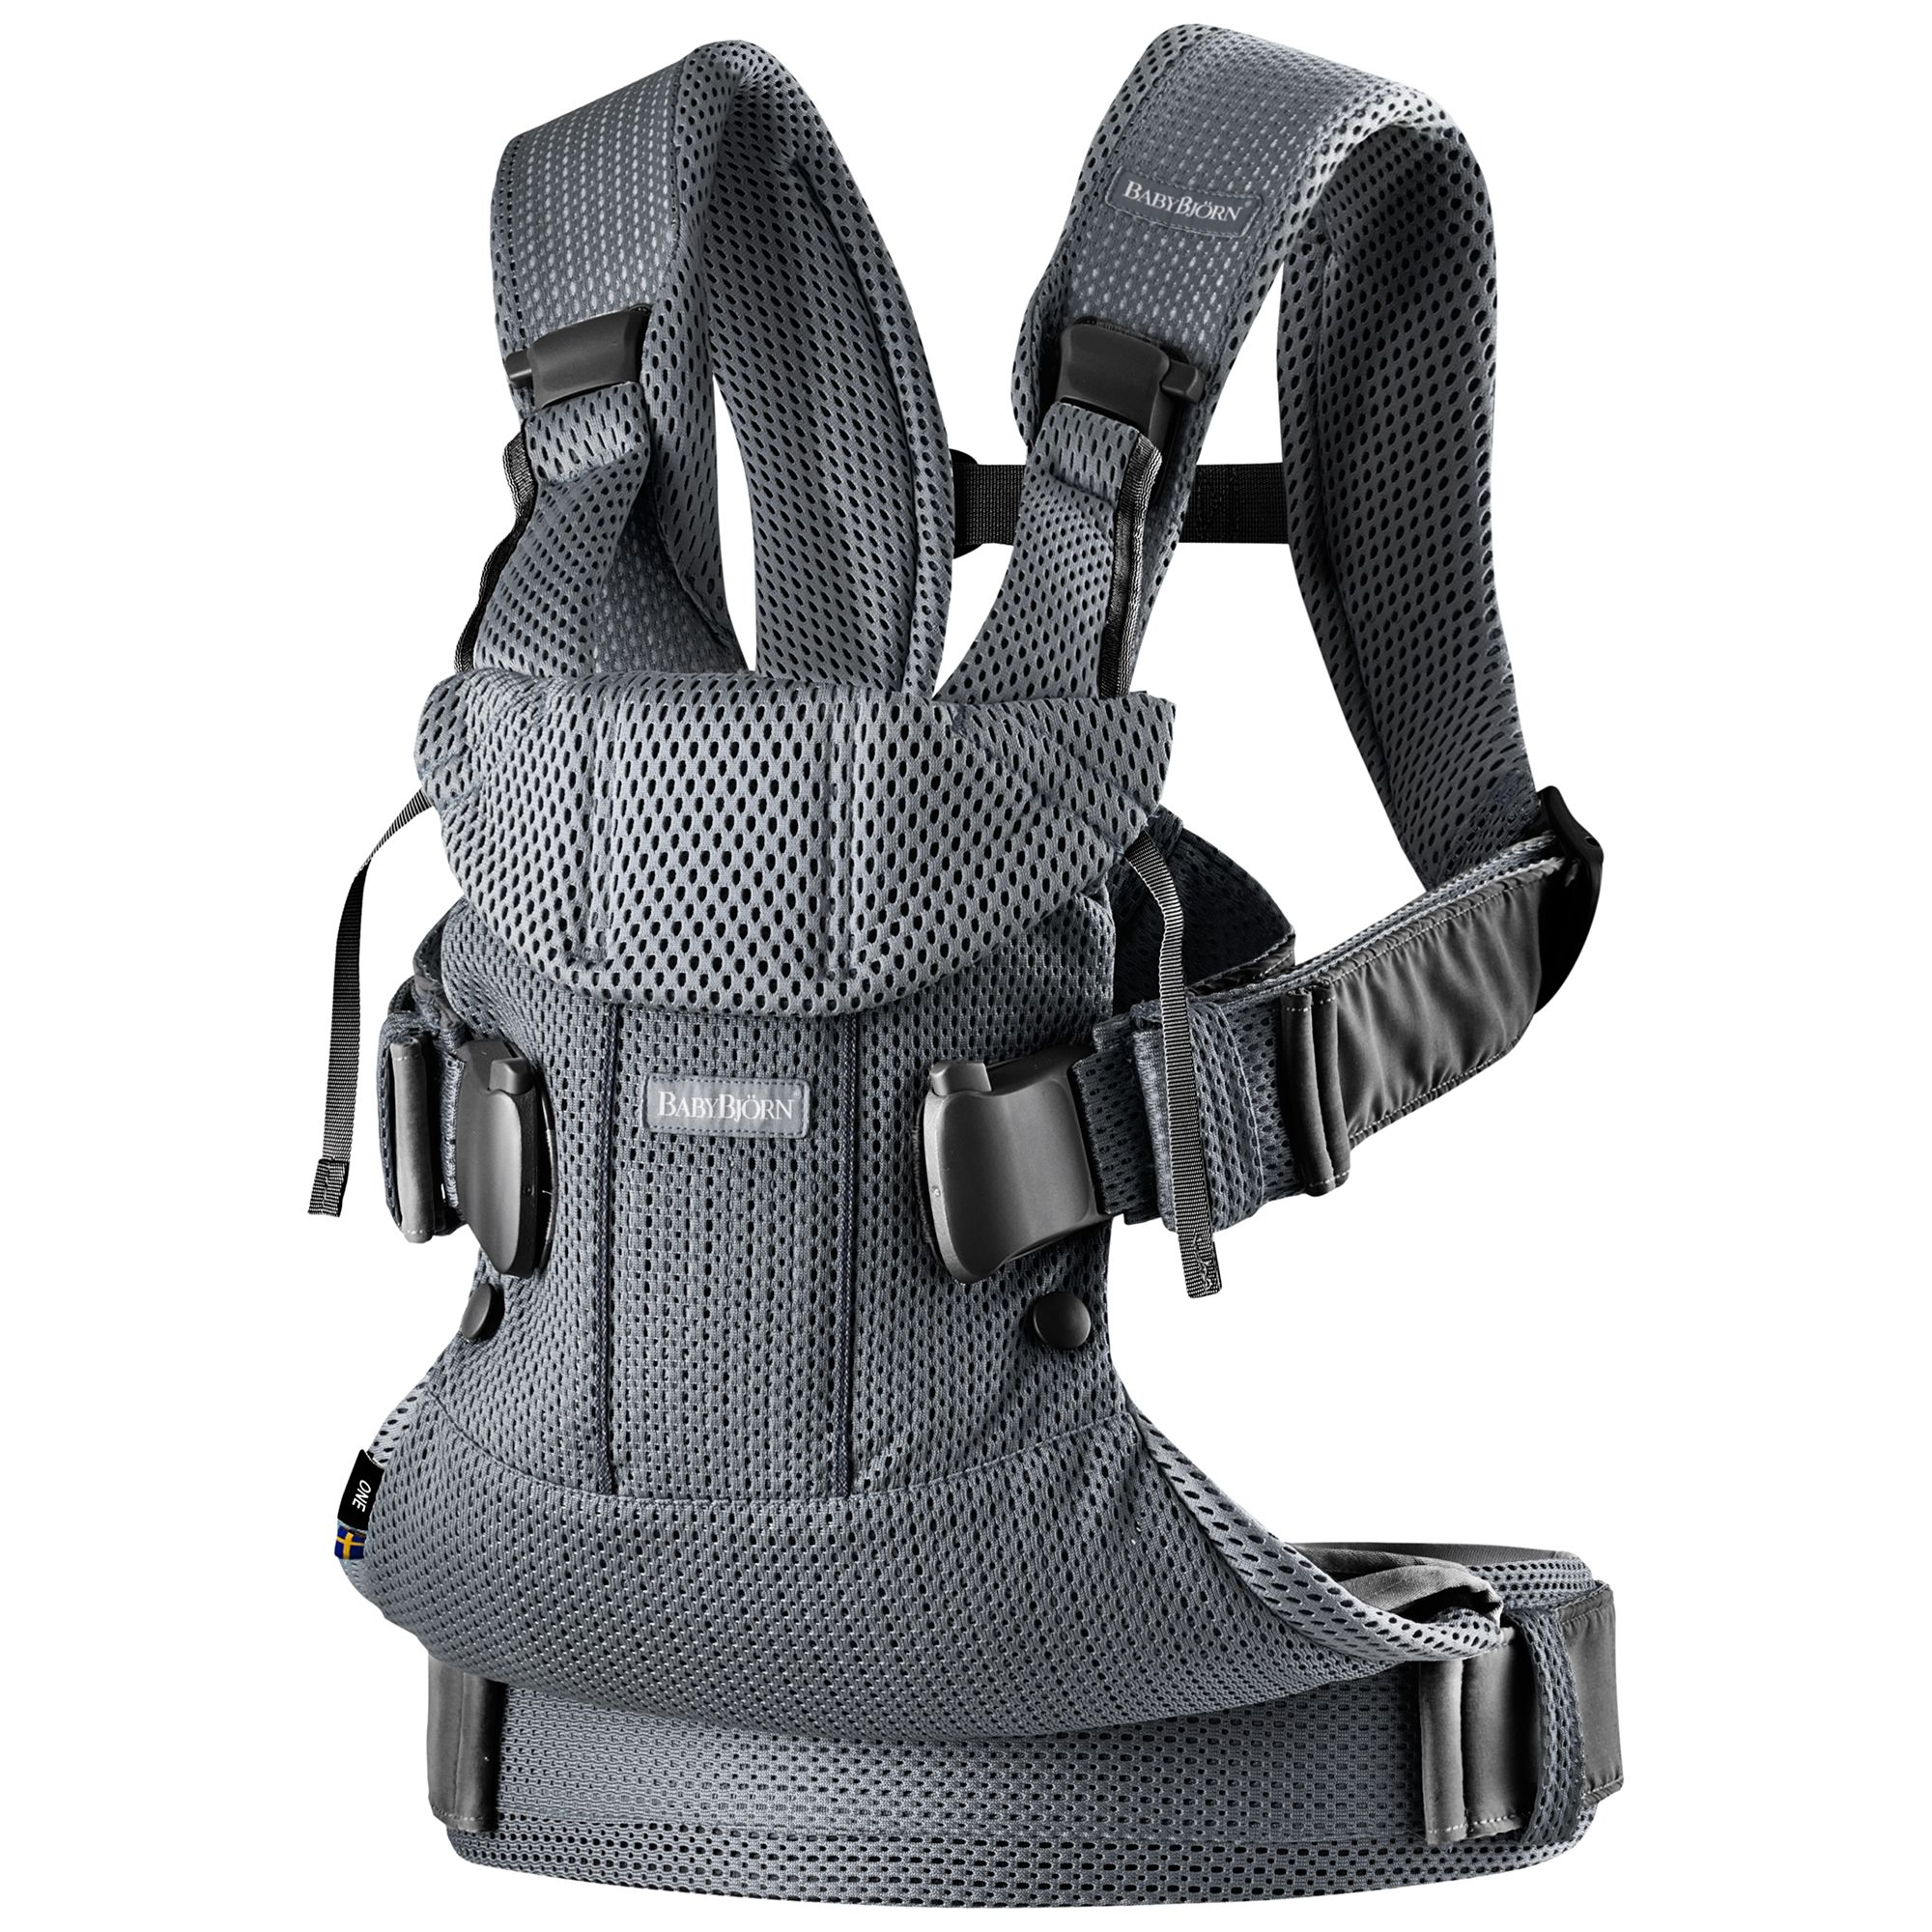 BabyBjorn BabyBjörn One Air Baby Carrier 2018, Anthracite